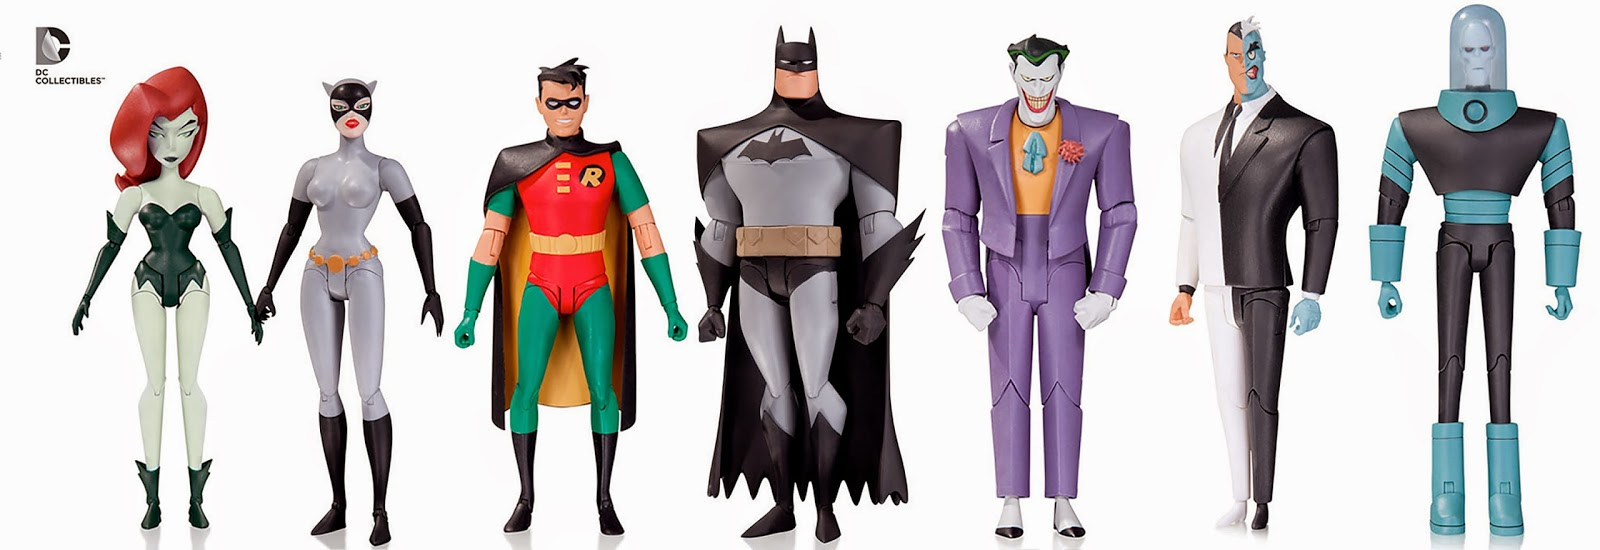 "DC Collectibles has announced the expansion of their 6"" Animated Batman figures. This looks to be a nice set of figures, especially with DCU dropping out of retail, this is a nice continuation to what could have easily been done by Mattel.    Just today we were introduced to the Joker, Robin, & Poison Ivy. Two Face and Mr Freeze's debut was a few months ago if only in sketches. This brings the total to 7 figures in an already unreleased line-up. Simply amazing. We're sure to see more at SDCC this summer as well.  Who's next?  Superman the Animated Series anyone?  Seeing how these are being handled definitely makes the mind wander. Seeing such a push into a territory with the idea that there will be more lends to the thought that this could be a new era approaching for DCC. Mattel finally bowed out of the 6"" game for DC characters leaving Marvel Legends to run the toy isles. Meanwhile DCC is putting out some of the best looking figures right now that we may have never come to expect from DCC, Formerly DC Direct. It even looks like we are hijacking Mattel's T Crotch/Hip assemblies anyway.   Points of articulation have been a point of articulation for years in action figure collecting. Do we need it? Does it diminish the look of the figure? What's more valuable, posability or awesome sculpts? Has anyone seen Figma? These people have been doing AWESOME beautiful Japanese characters, and when they get to do familiar pop culture characters, they blow it away!!!   Anyway, I think its been pretty clear that DCC is looking to pick up the slack left behind by Mattel. Could we be stepping into the world where the figures we wanted to see from Mattel will come from DCC in our current scale?  Superman Movie Masters anyone?   Imagine the result of DCC getting behind supplementing our appetites for Mattel product? We finally get a Christopher Reeve retail figure and he's 4"" tall? or less? No thanks, why is it that Mattel has decided to get out of the 6"" game? or have they? Will Movie Masters ALWAYS be on the horizon while the 3.75"" figures are our ballet boxes for what properties get the 6"" treatment? Has Mattel caught on to Hasbro's directional success?   There are a few stinkers in Hasbro's pegs but for the most part they are sought after characters to varying degrees. Star Wars alone in its 3.75"" line can detect the demand for more characters in its own line, they've been doing it for years though. Regardless, if we're not going to get them from Mattel, why   not accept one from a company that can do every bit the justice to a property like this?"